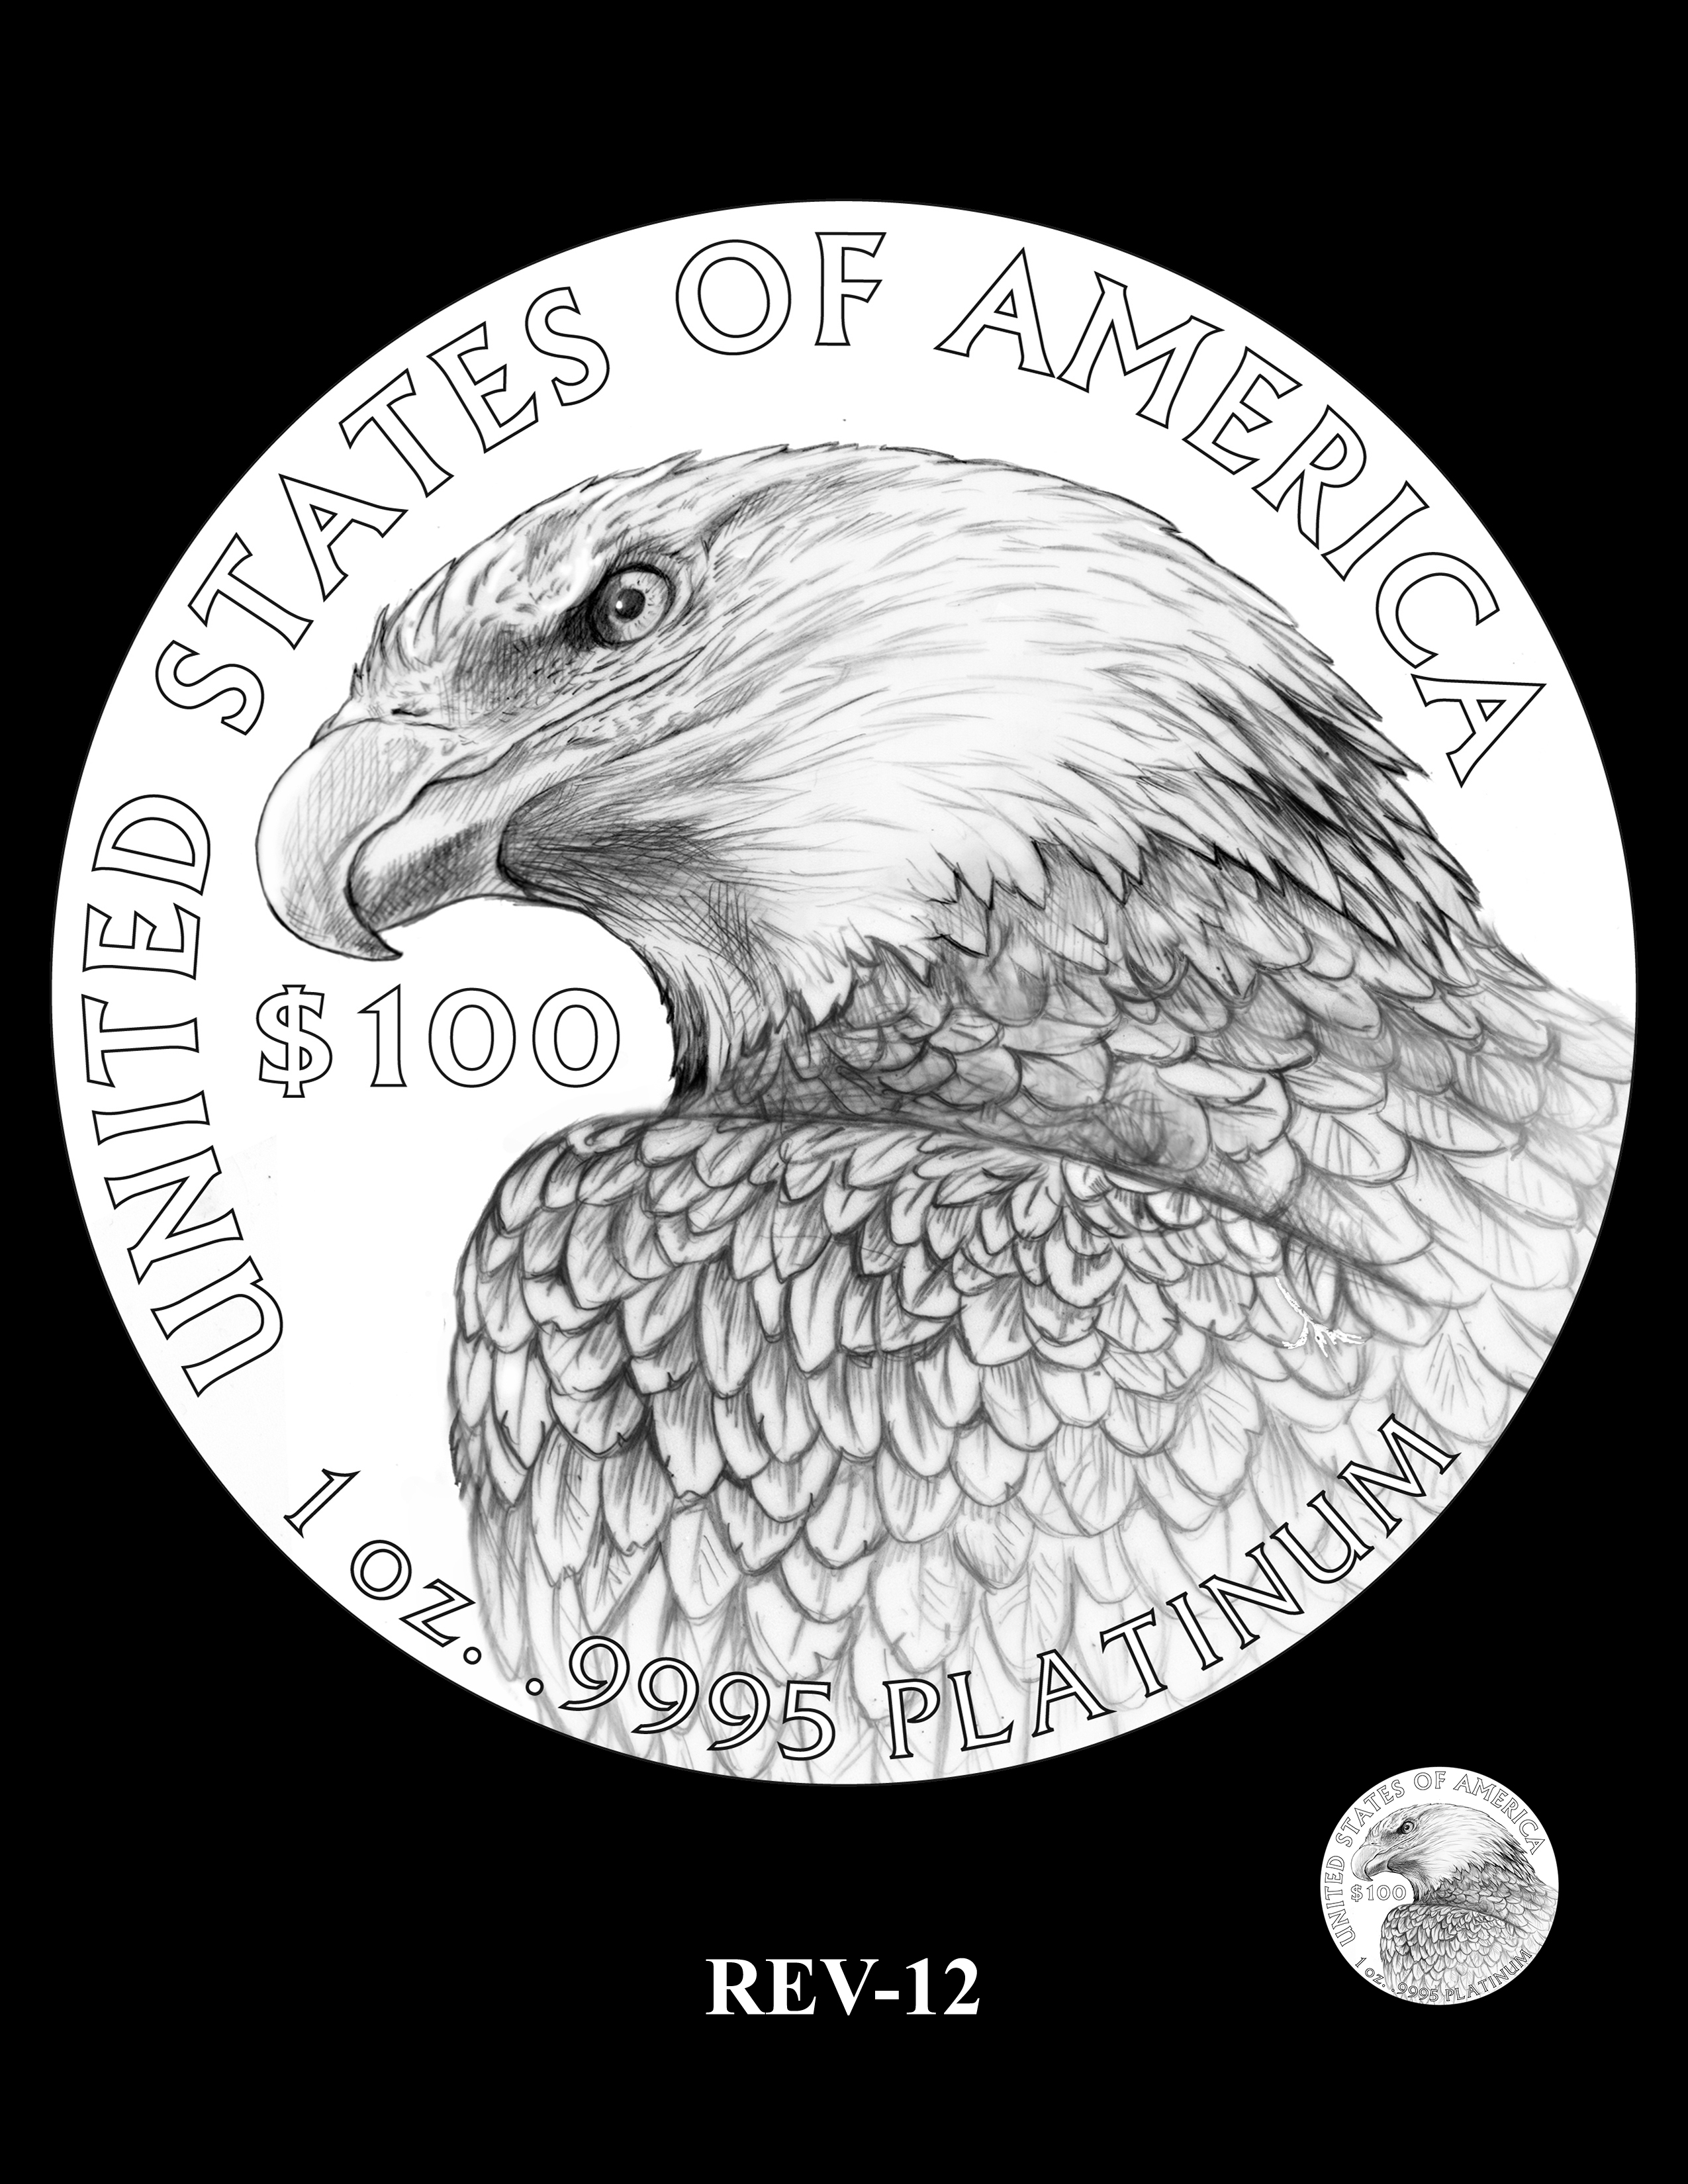 SETXX-REV-12 - 2018 2019 and 2020 American Eagle Platinum Proof Program